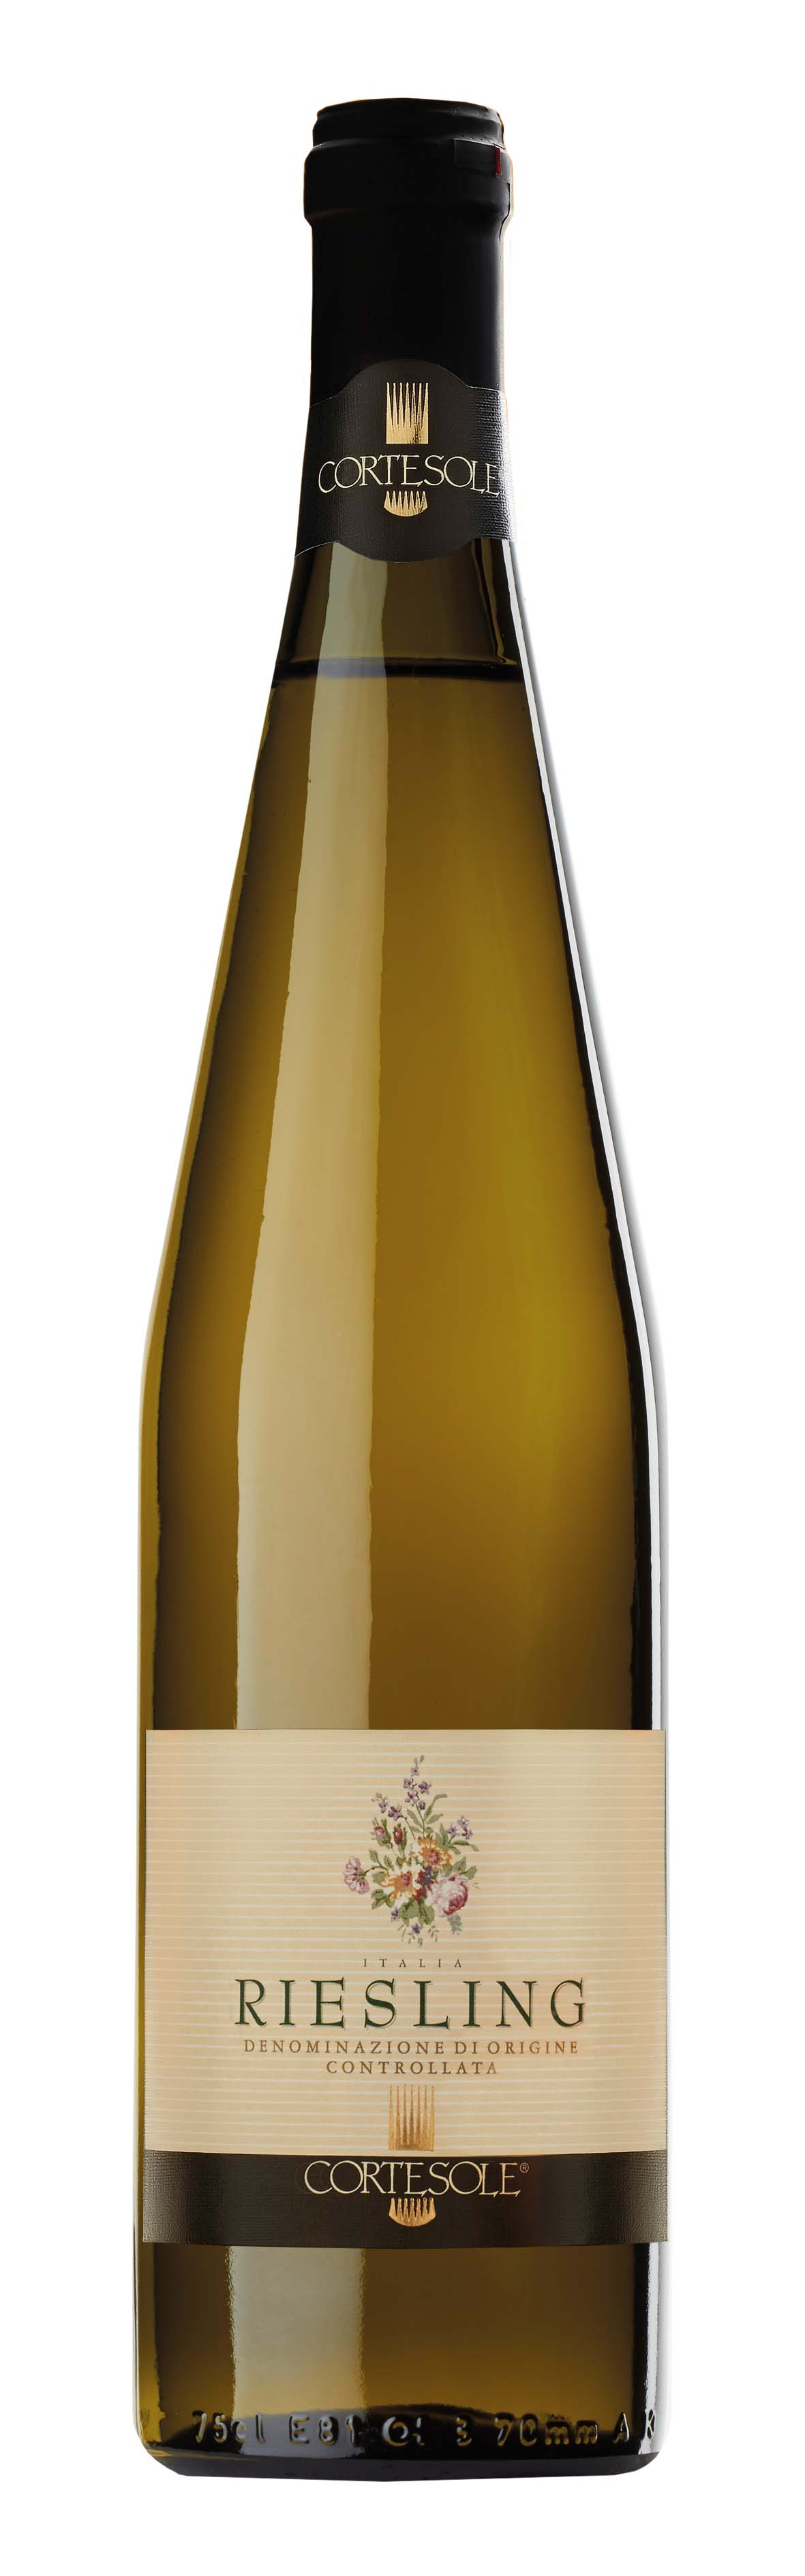 RIESLING copia